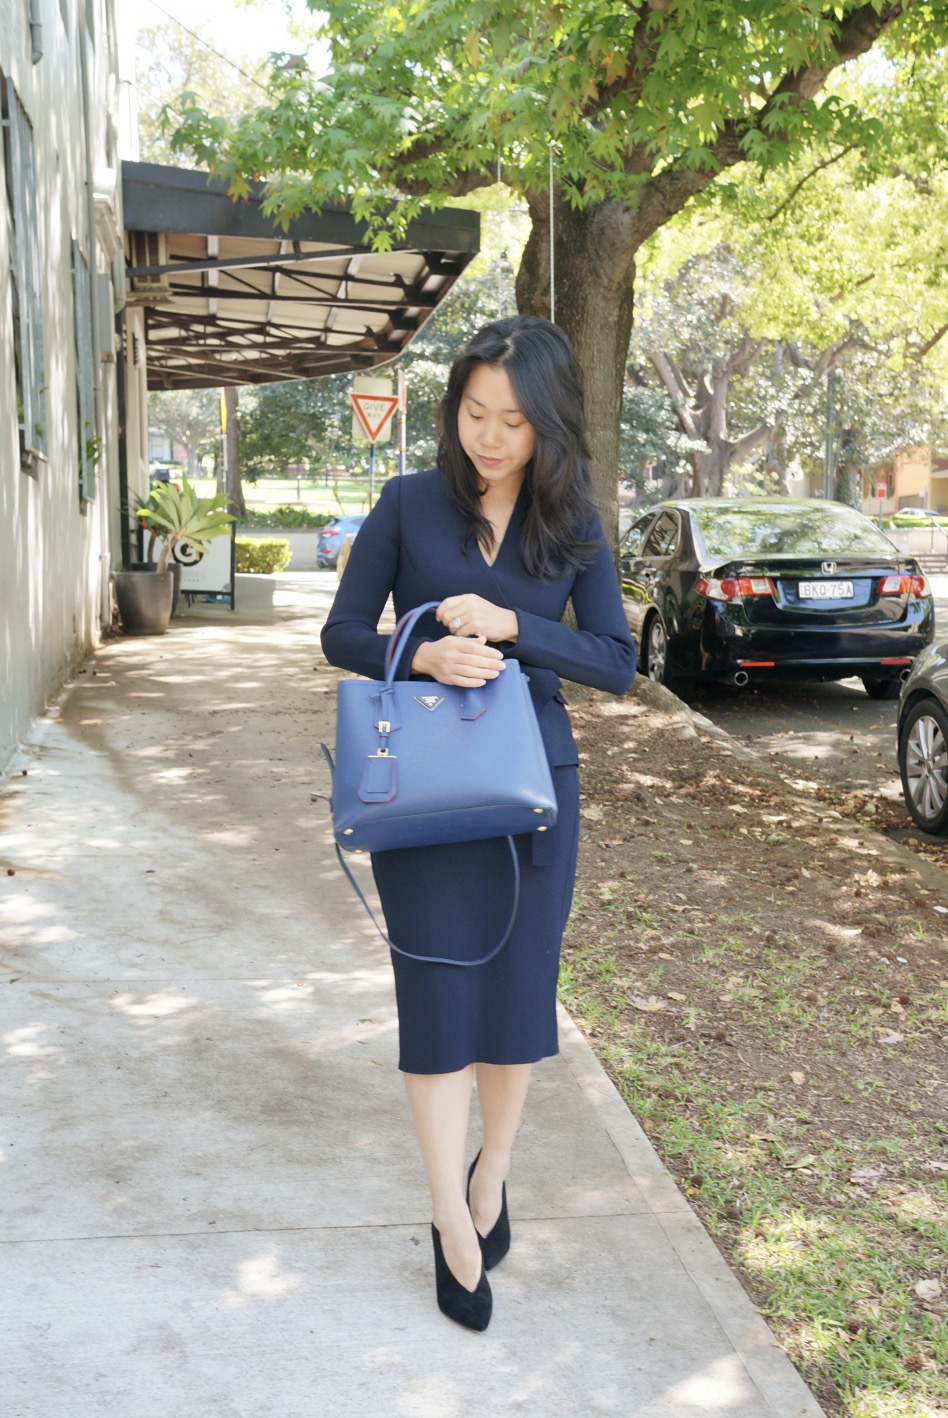 Woman in navy suit carrying Prada Saffiano Double tote